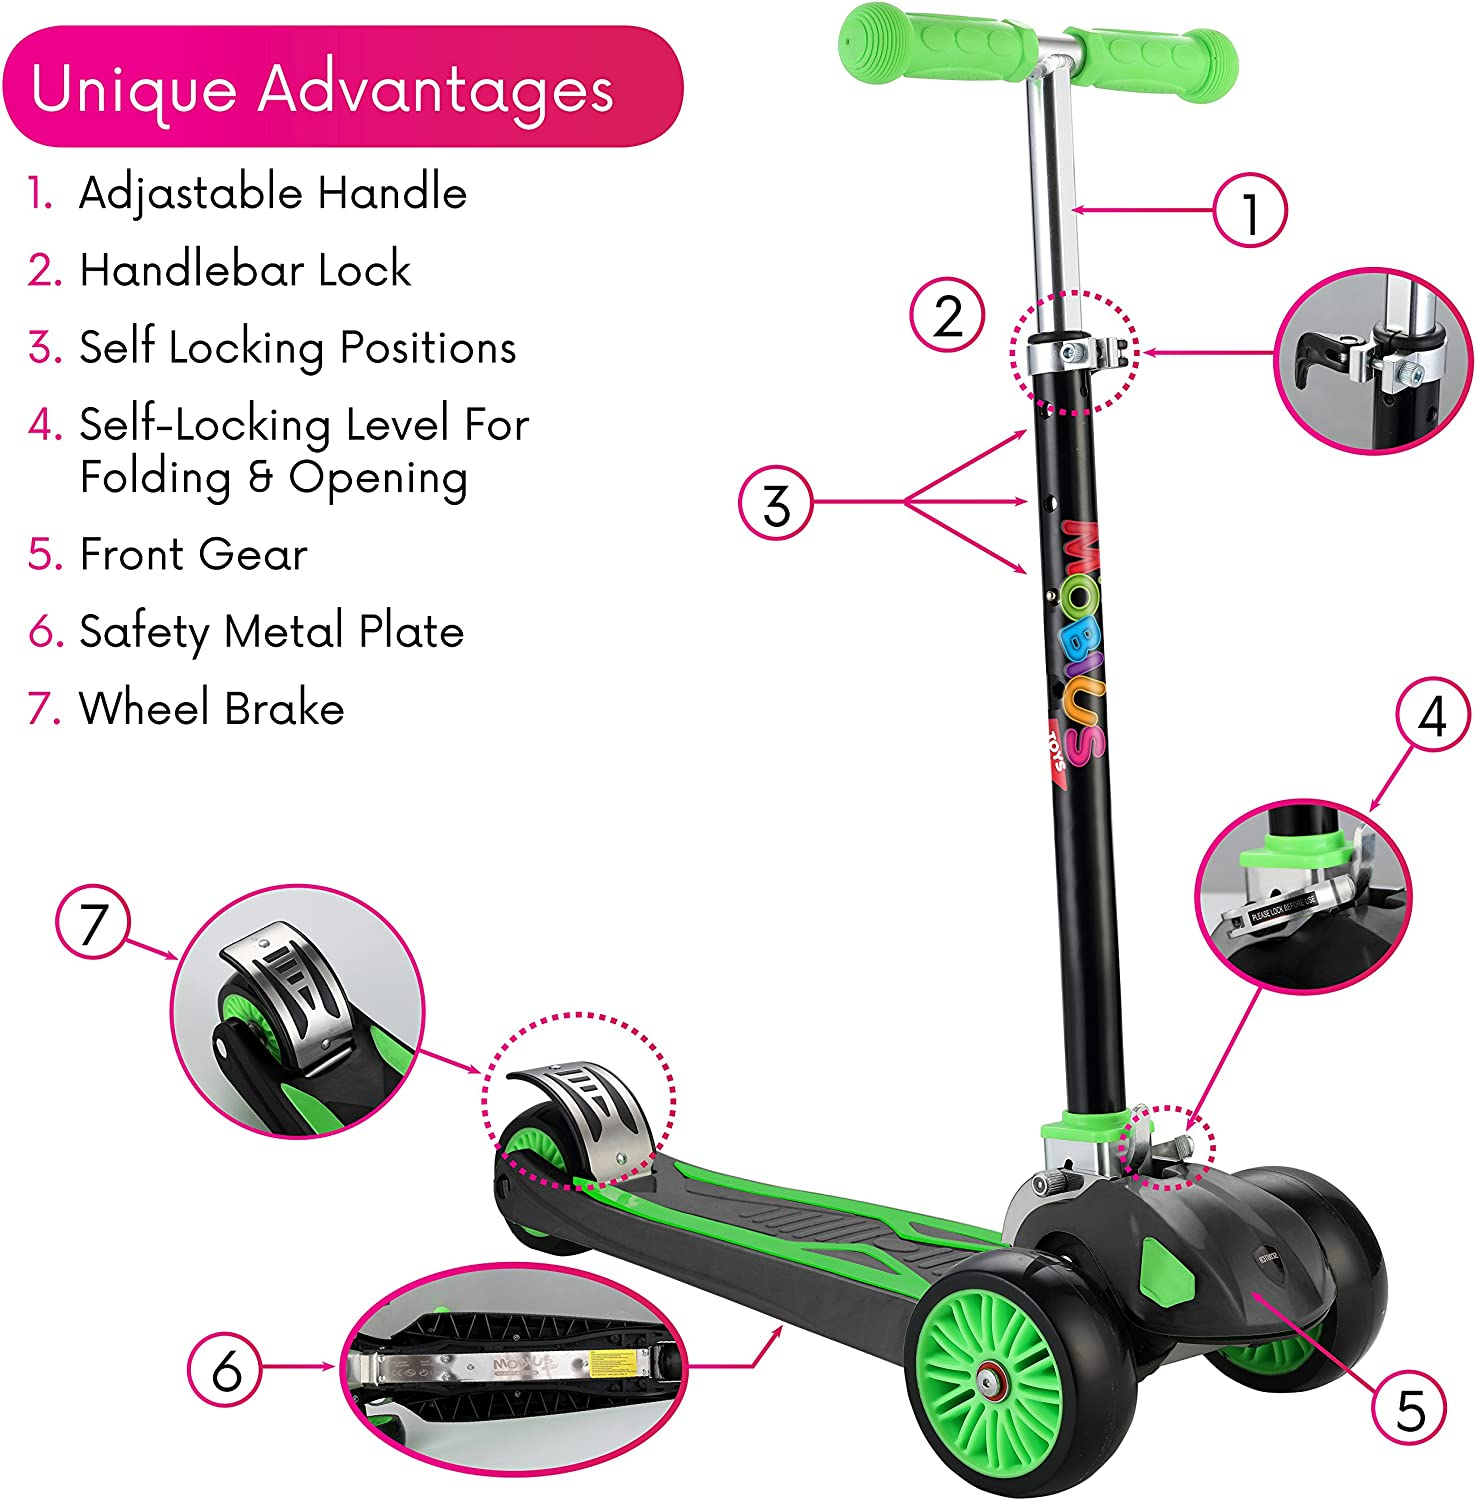 Amazon.com: Patinete para niños, Maxi Plegable Kick Scooter ...